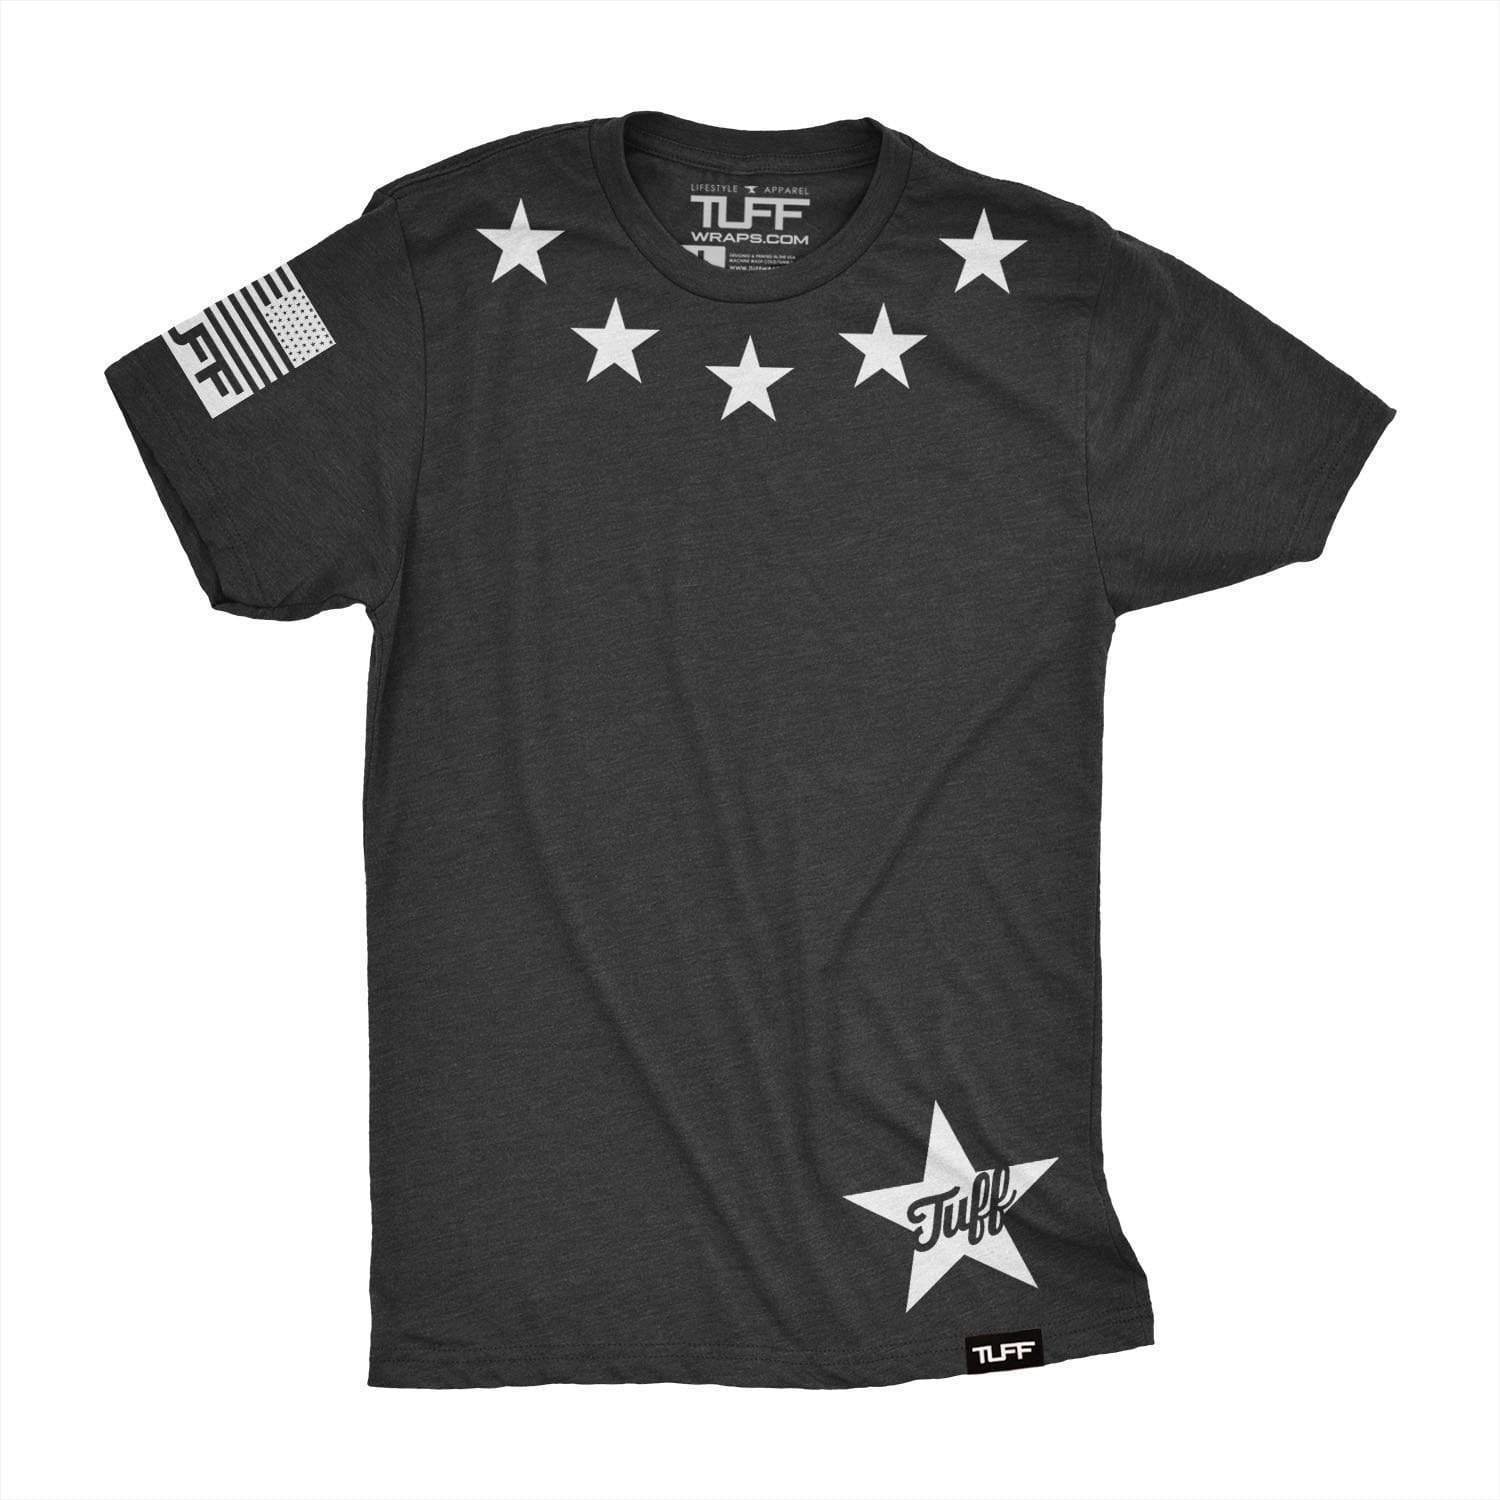 TUFF Hollywood Tee